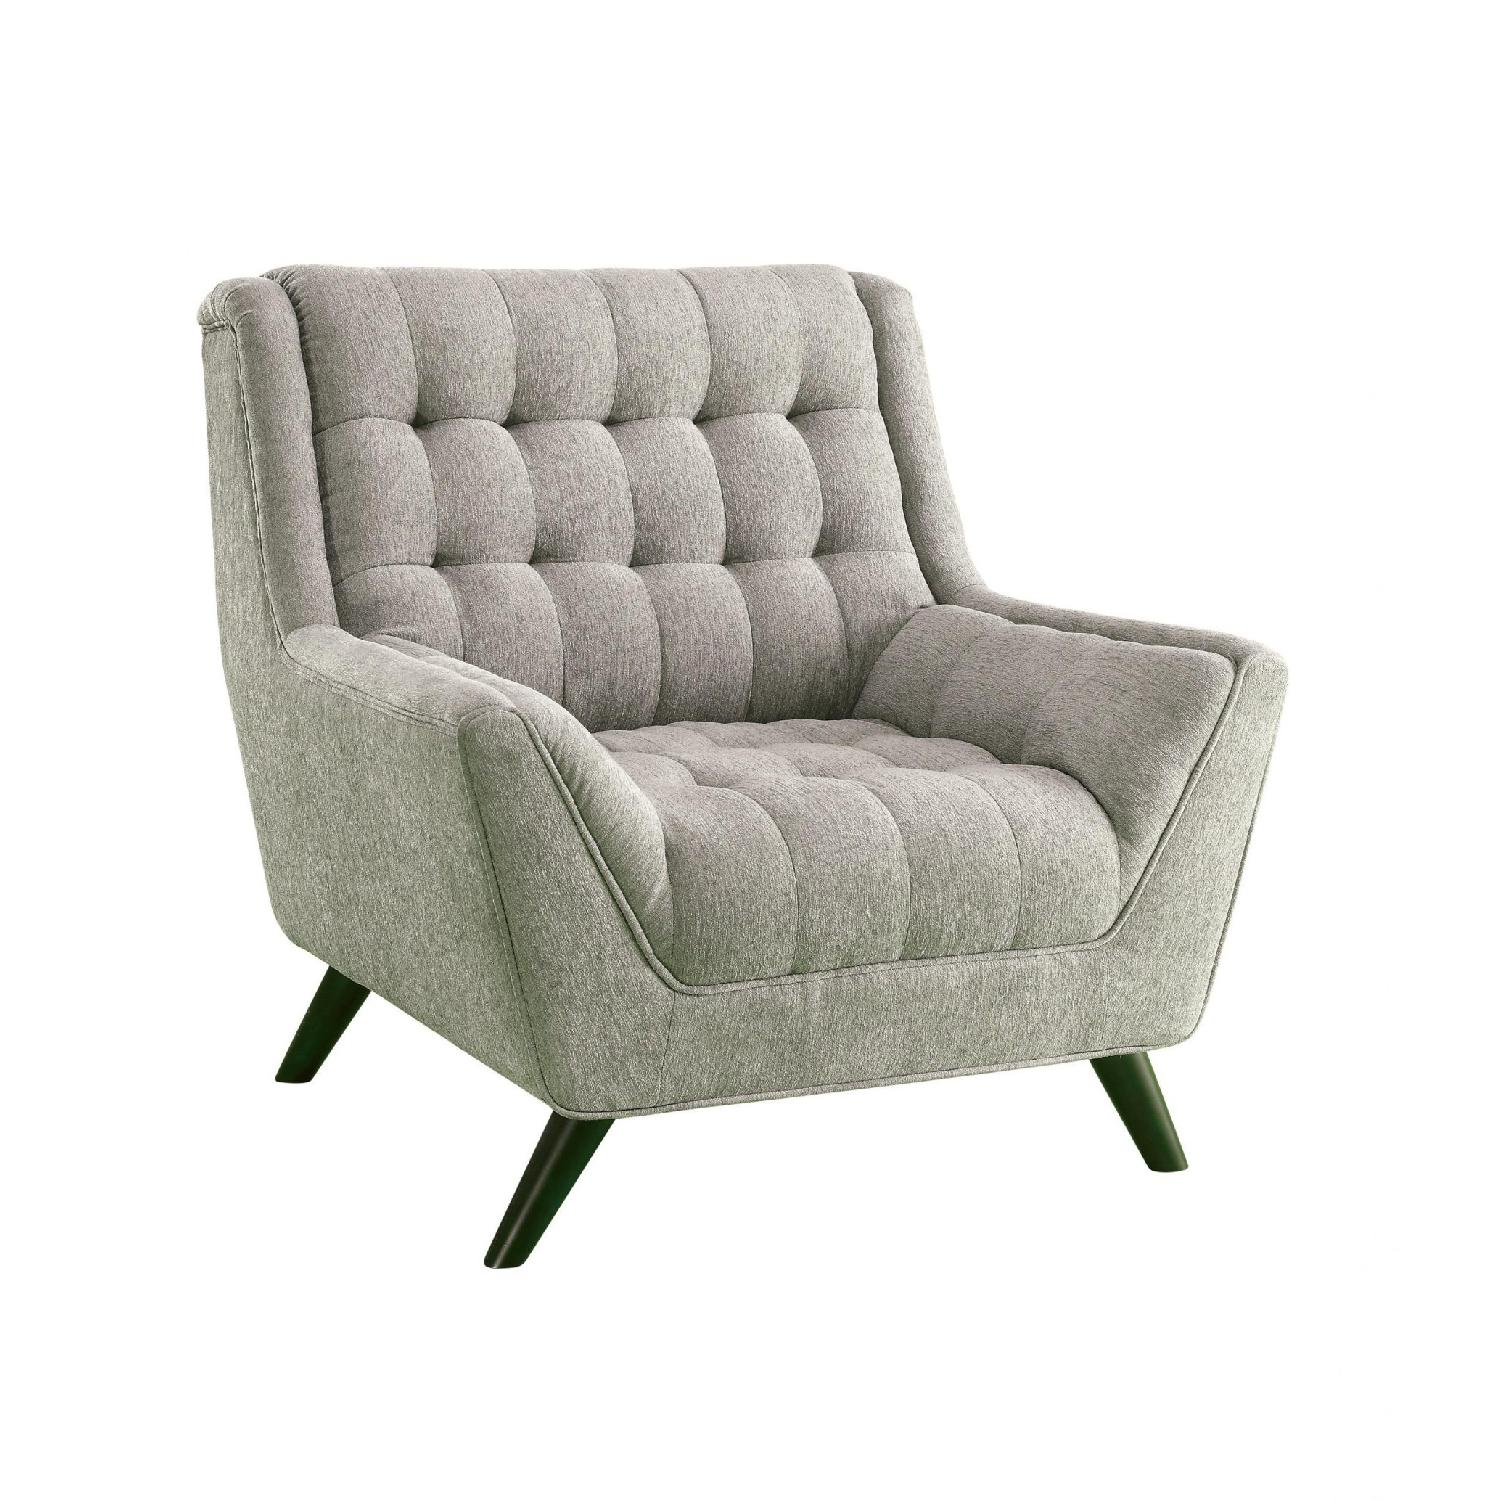 Modern Retro Chair in Light Grey Chenille Fabric - image-0